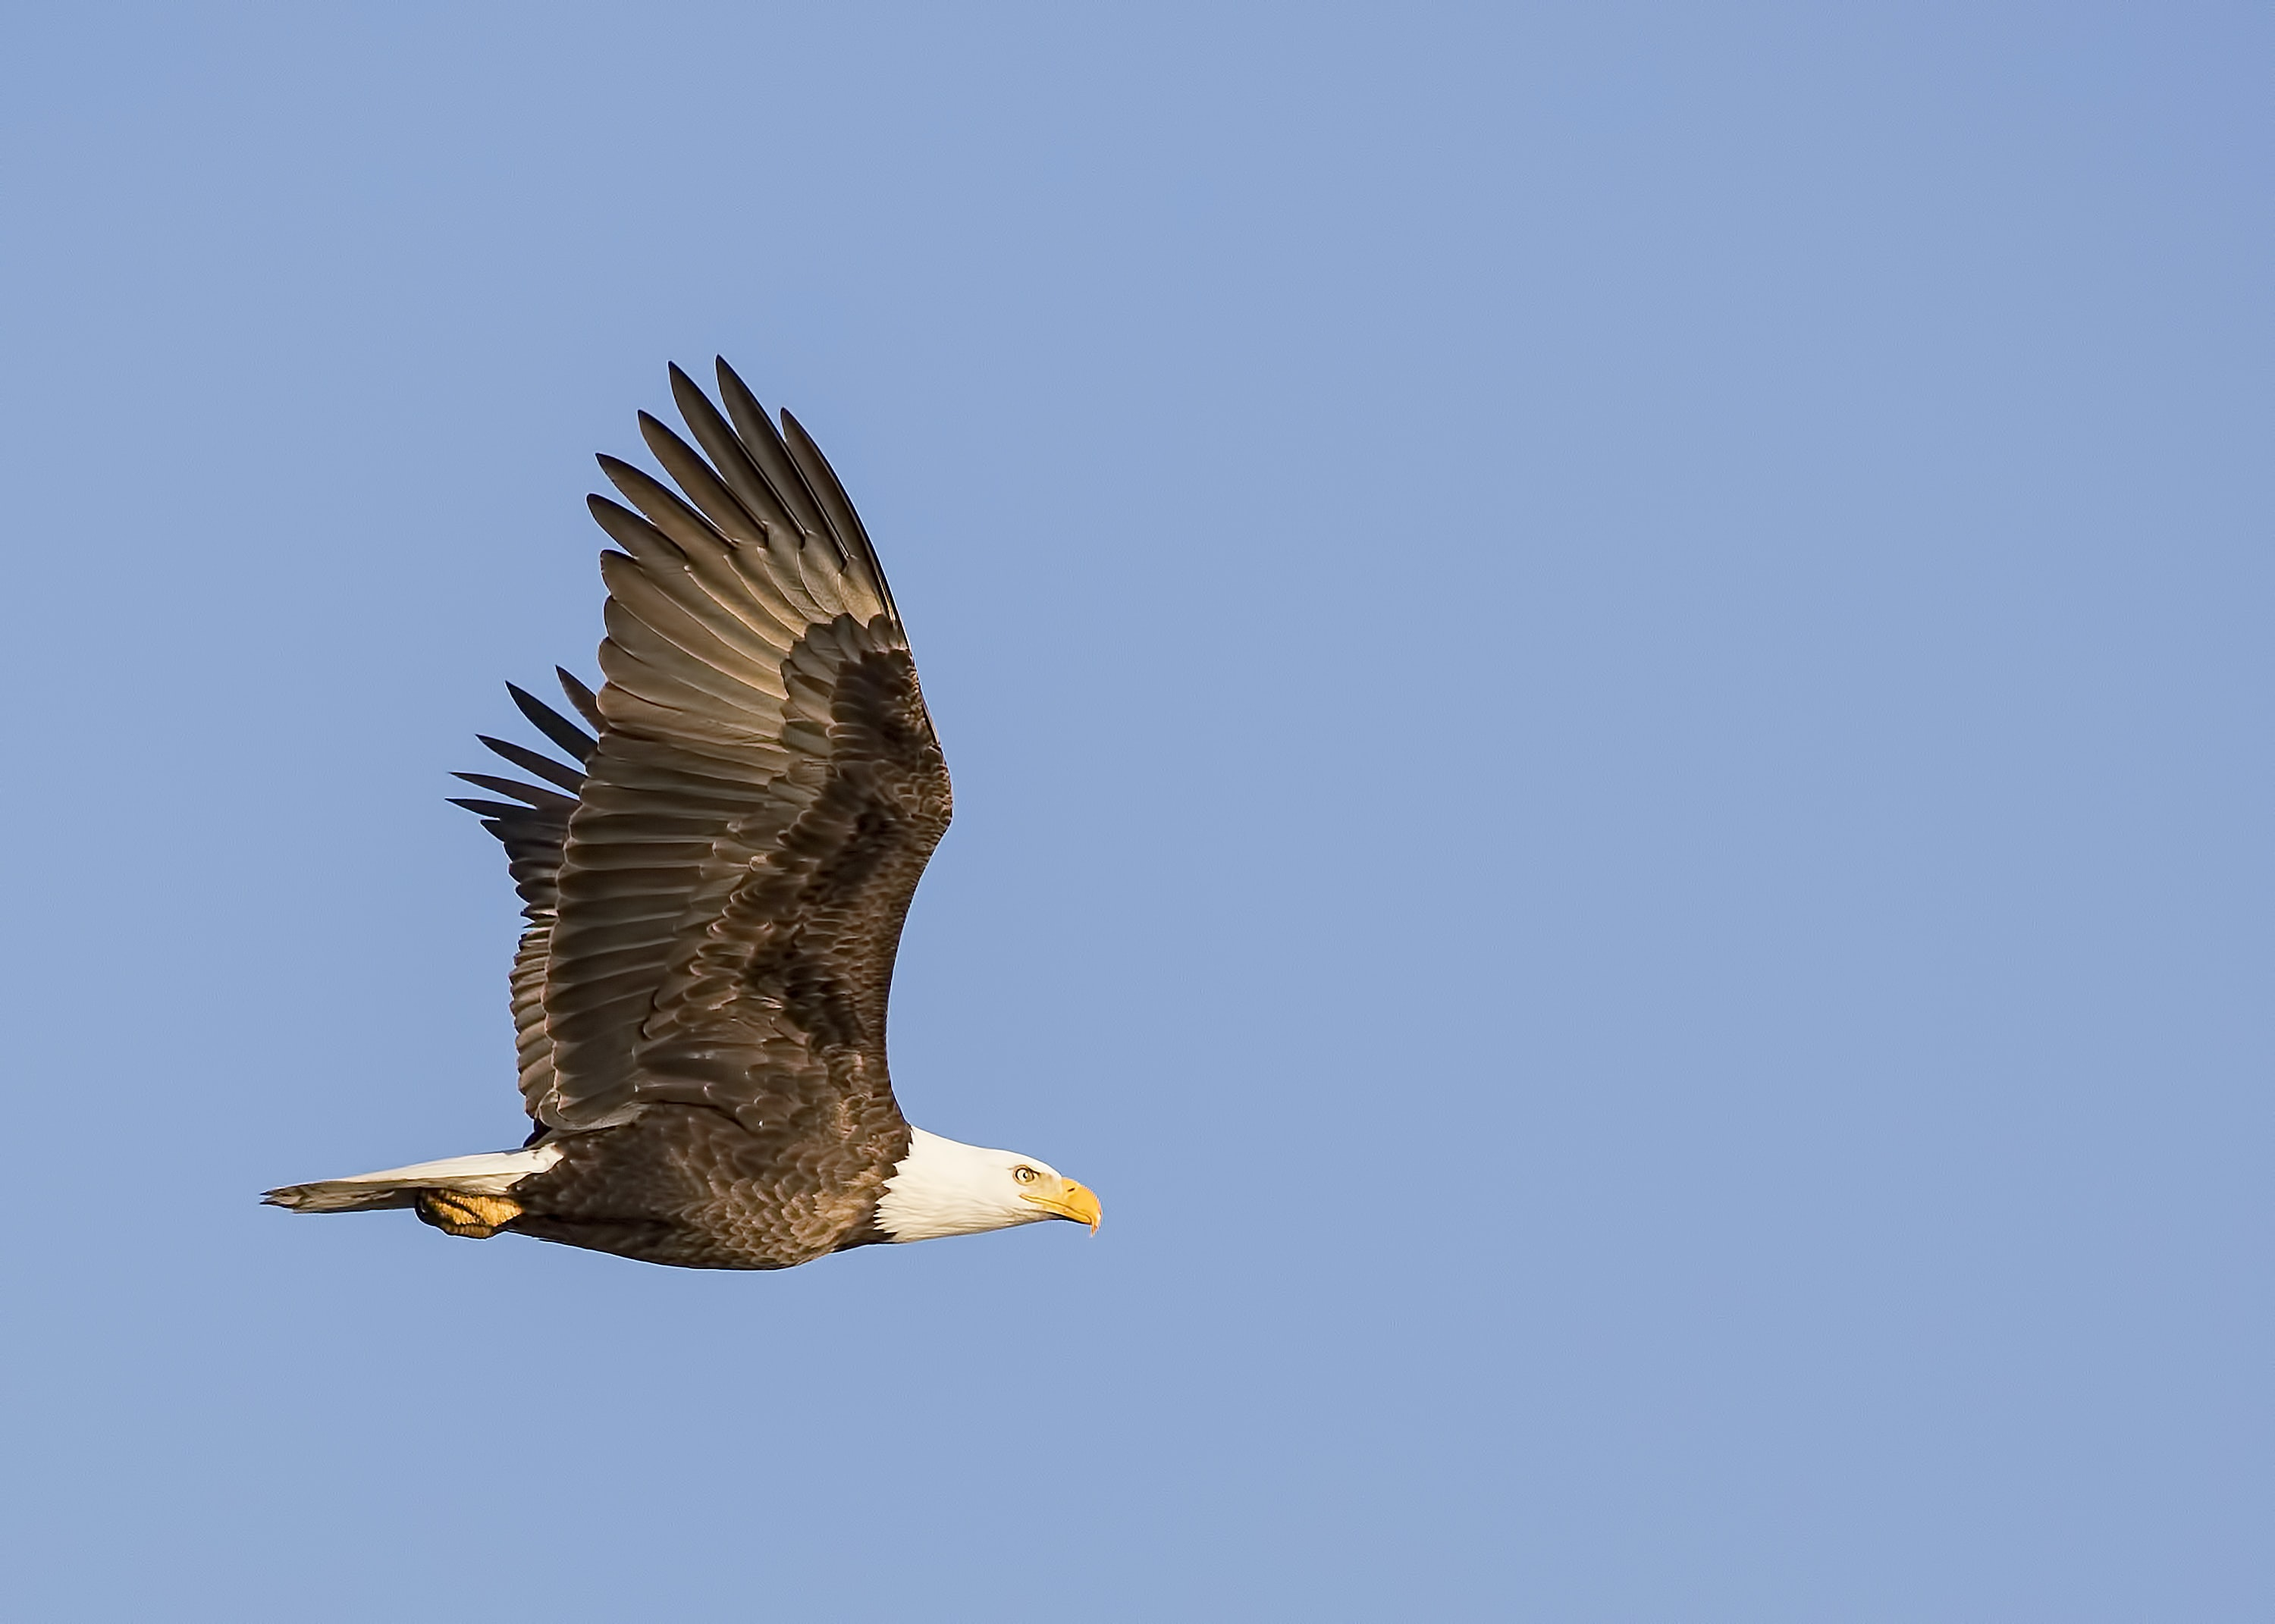 photo of bald eagle flying in the sky